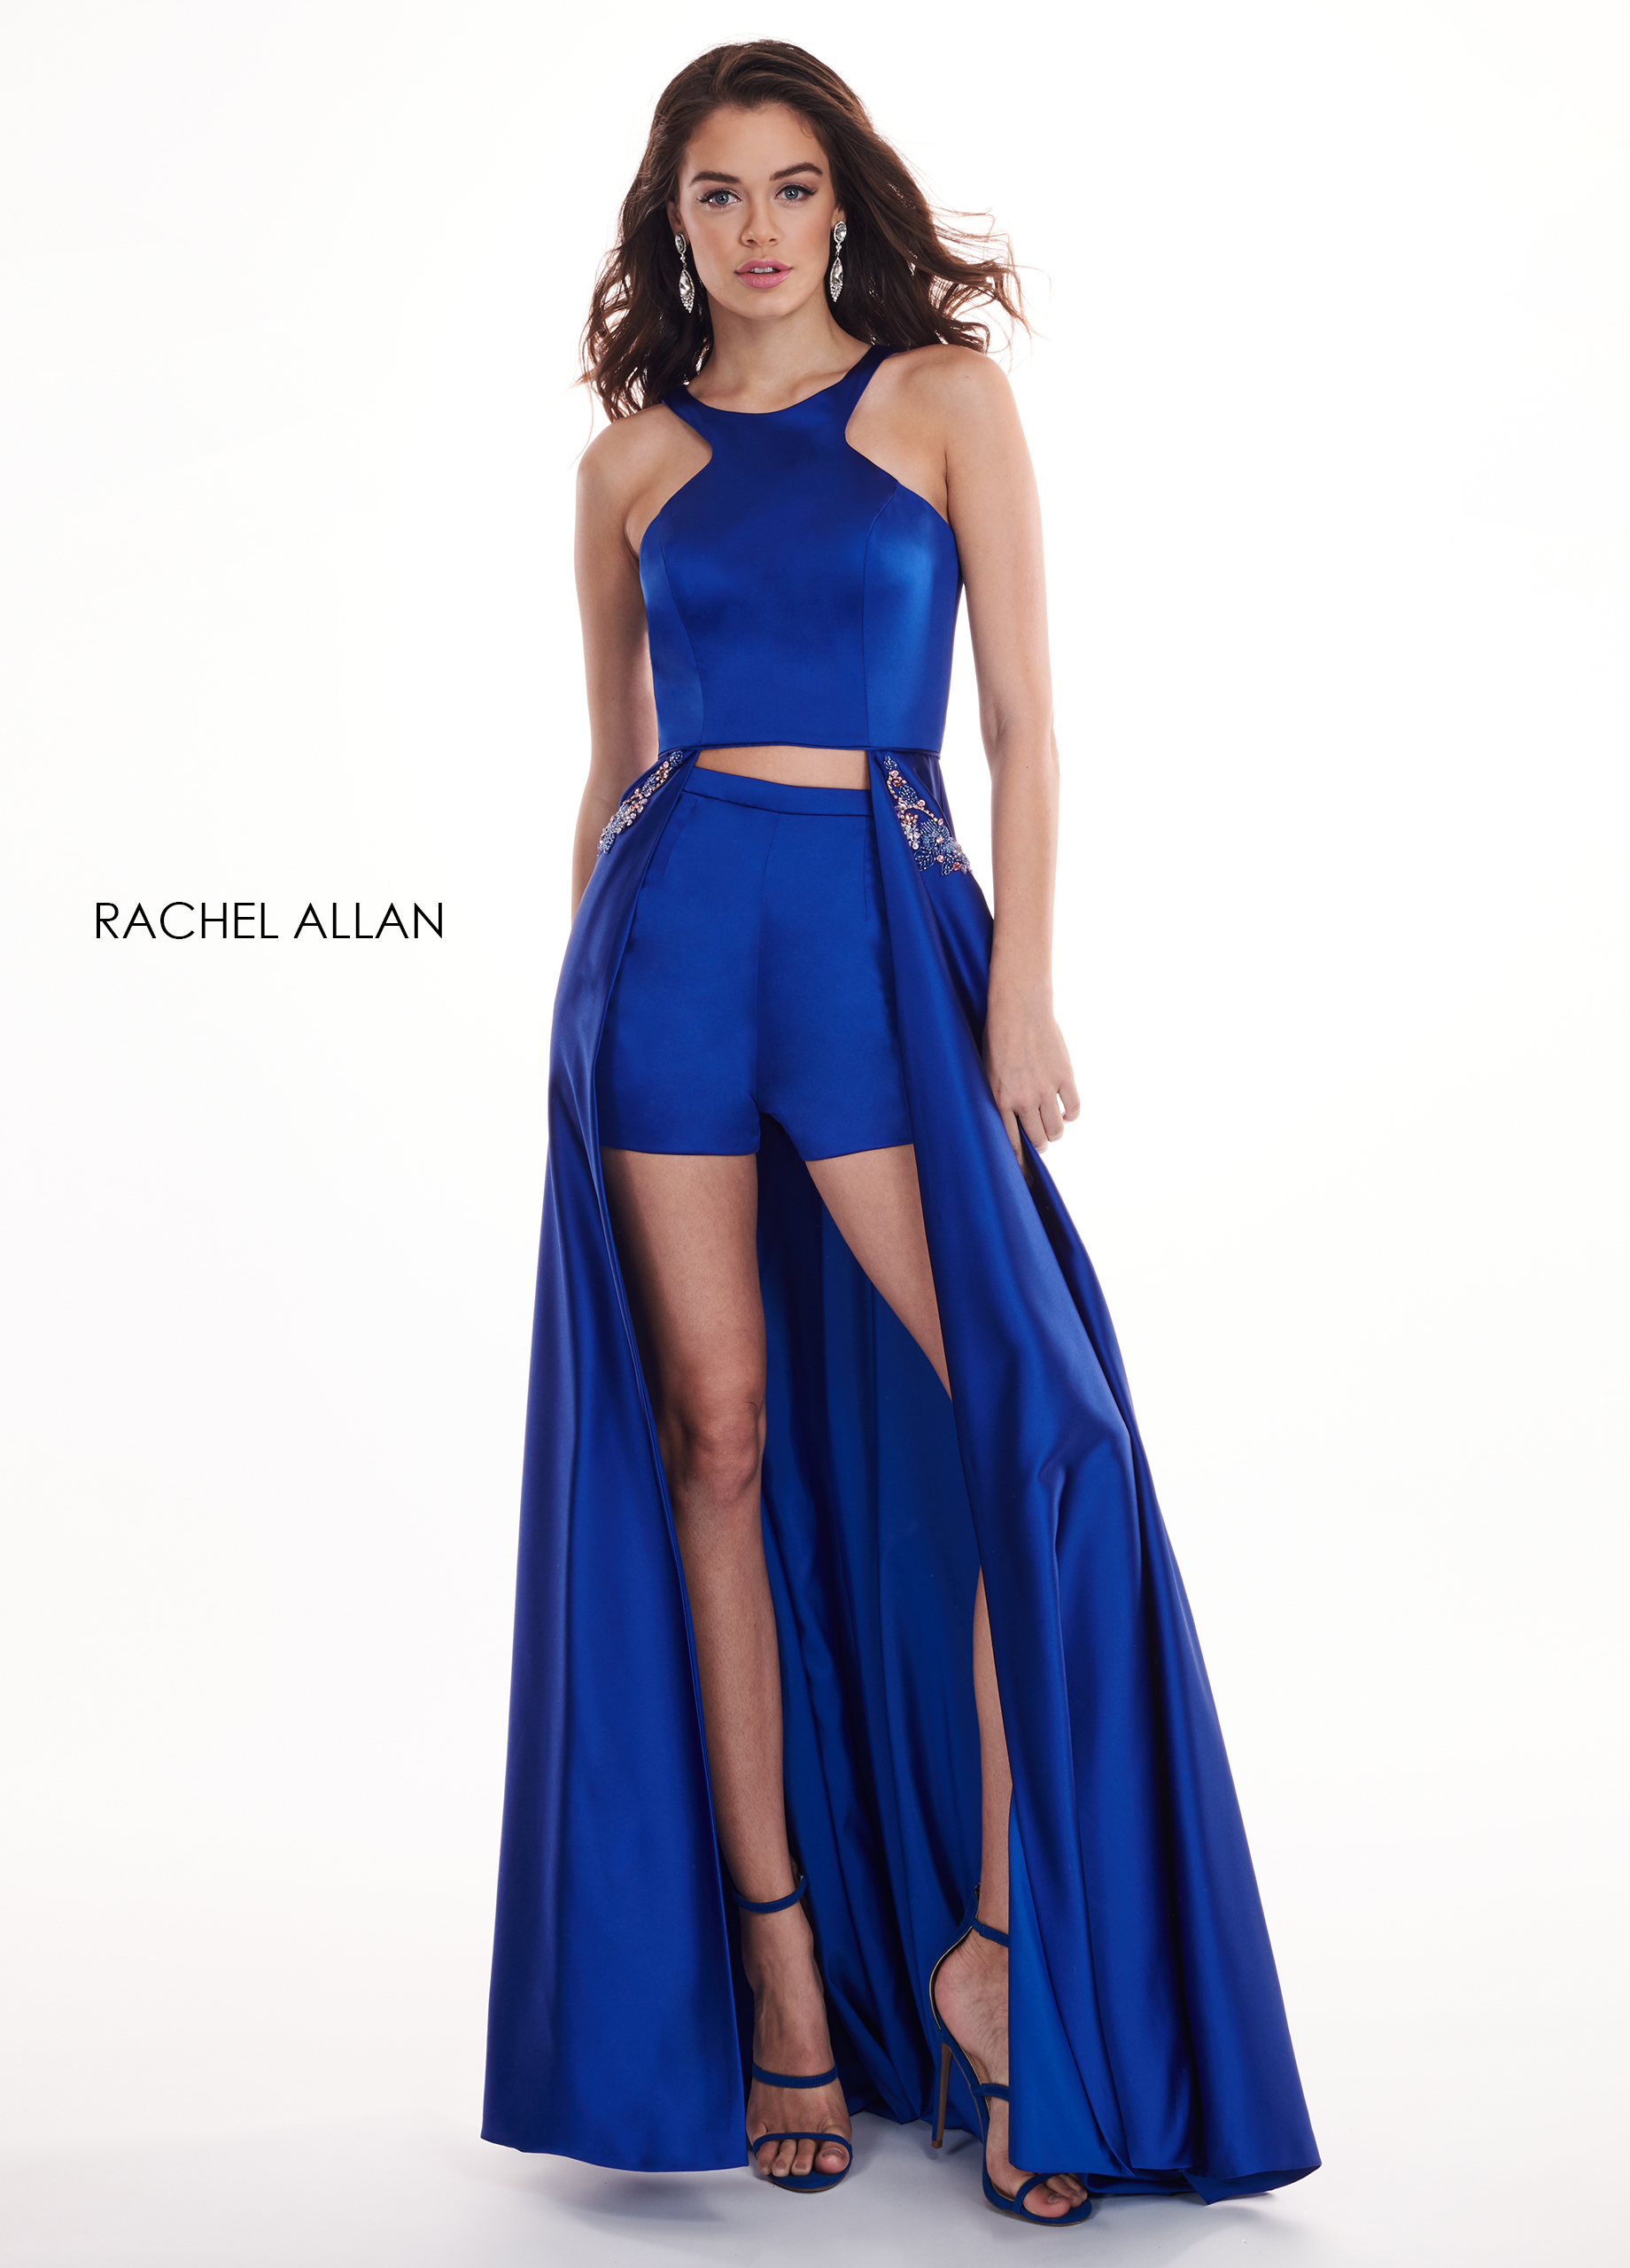 High Neckline Shorts With Overlay Prom Dresses in Royal Color